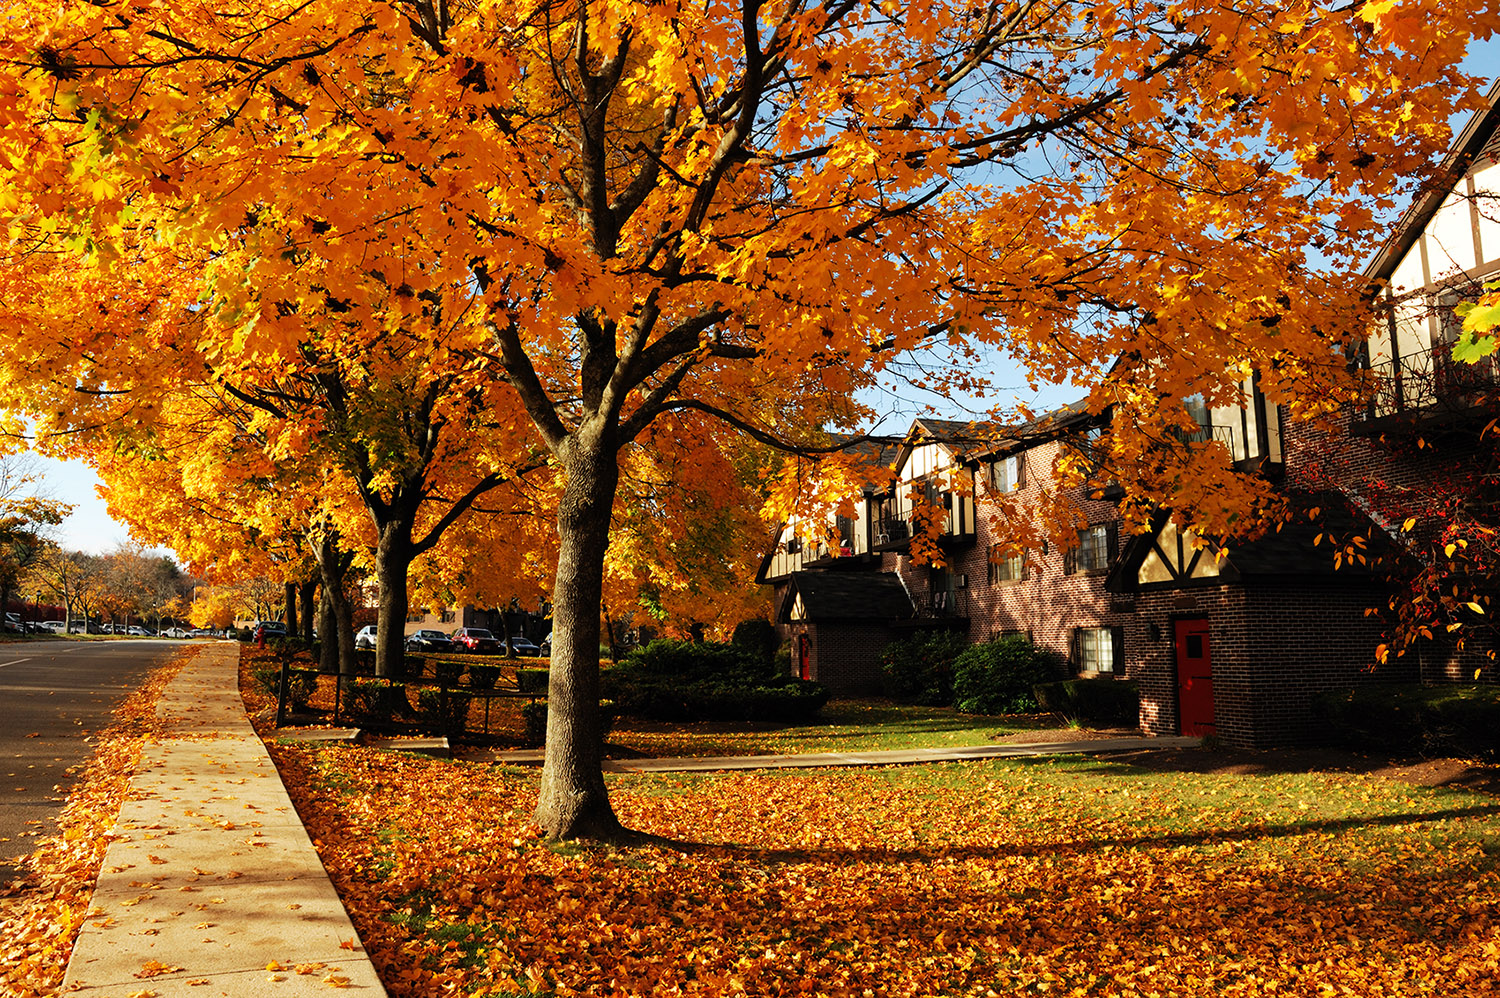 residential area in autumn color